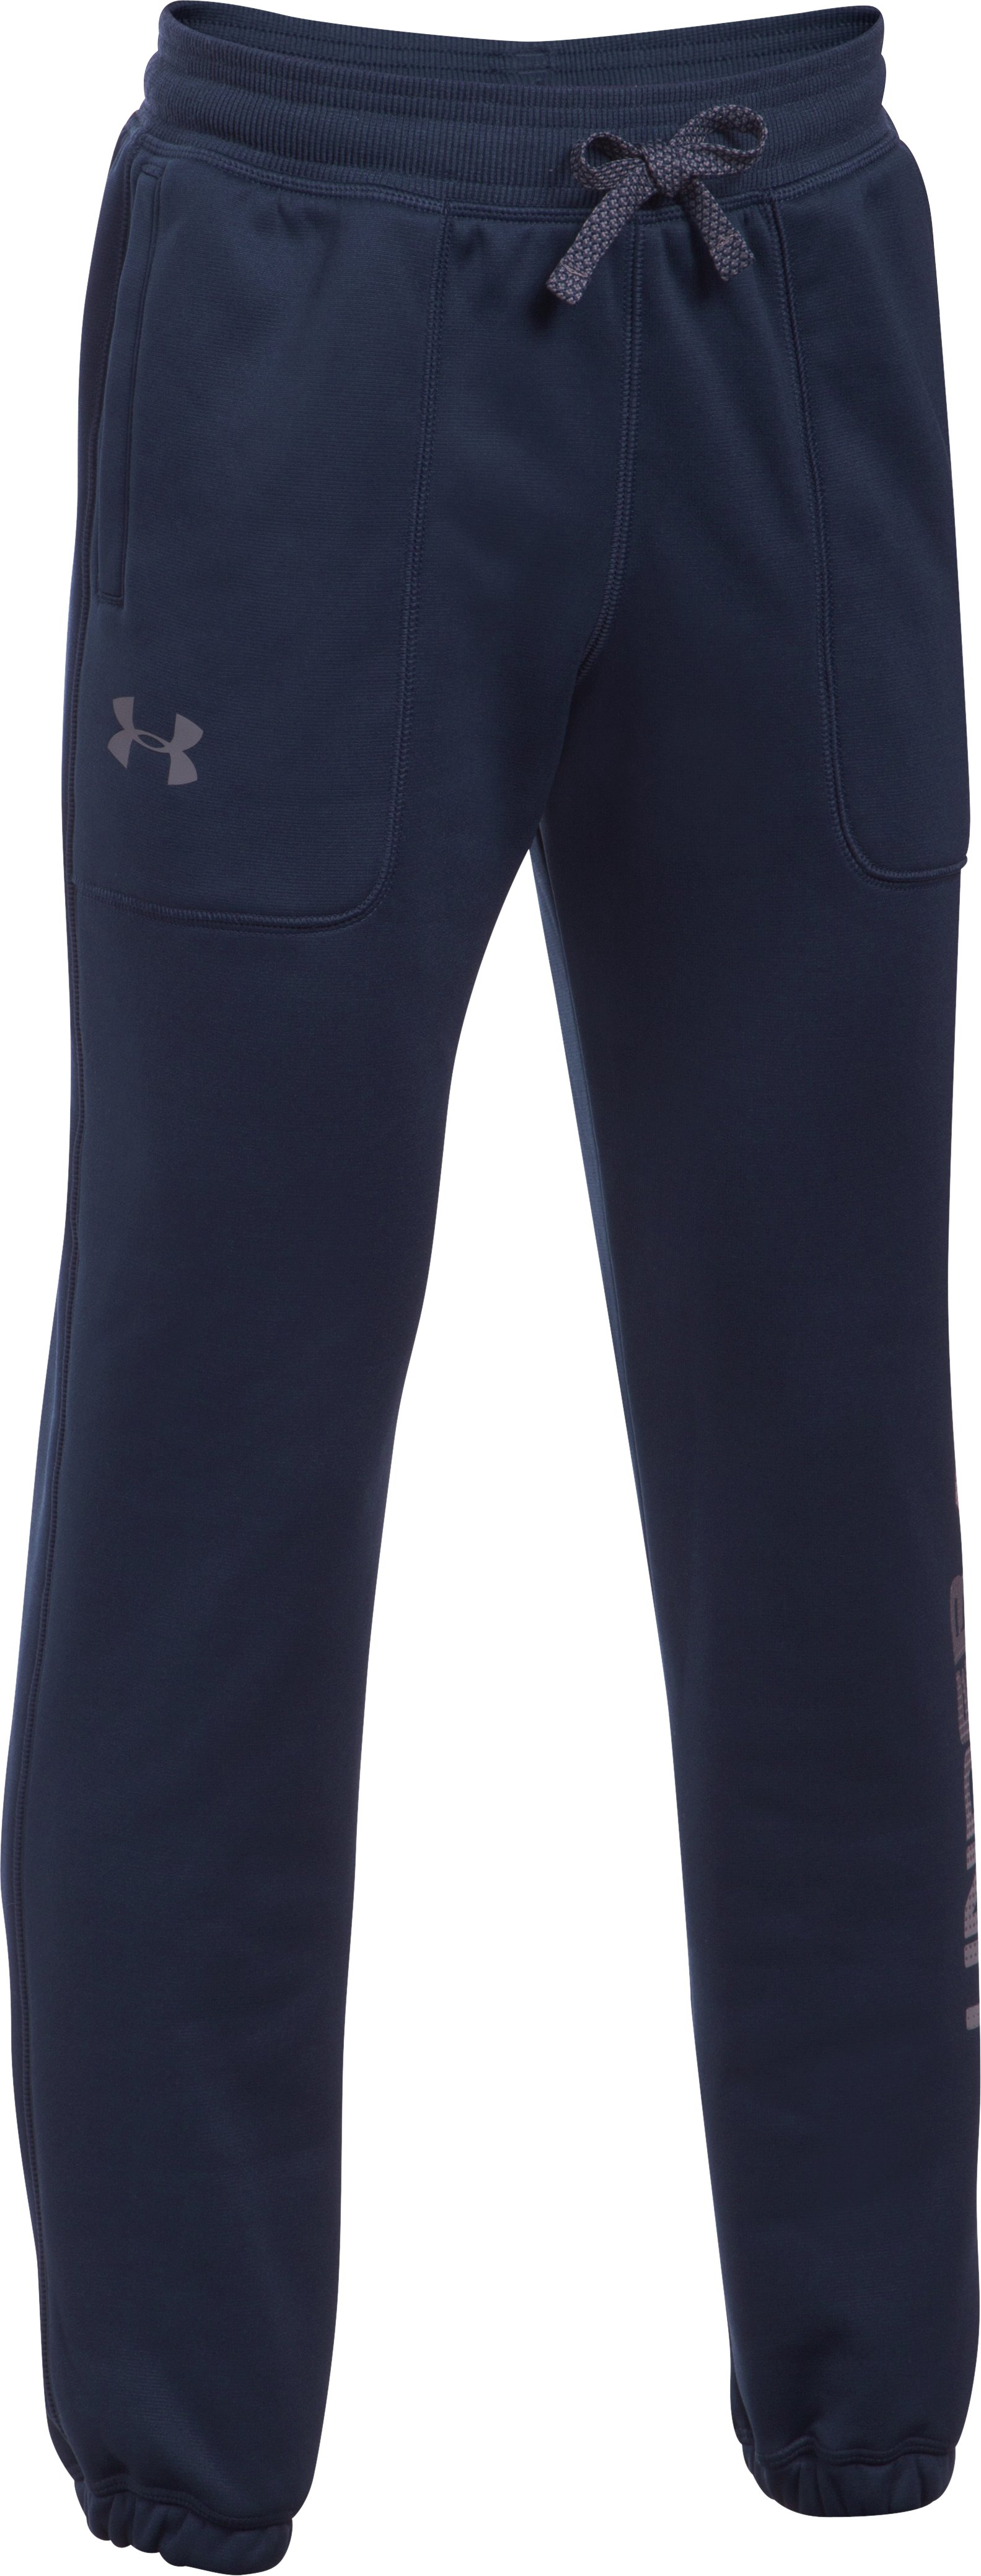 Boys' Armour Fleece® Branded Joggers, Midnight Navy